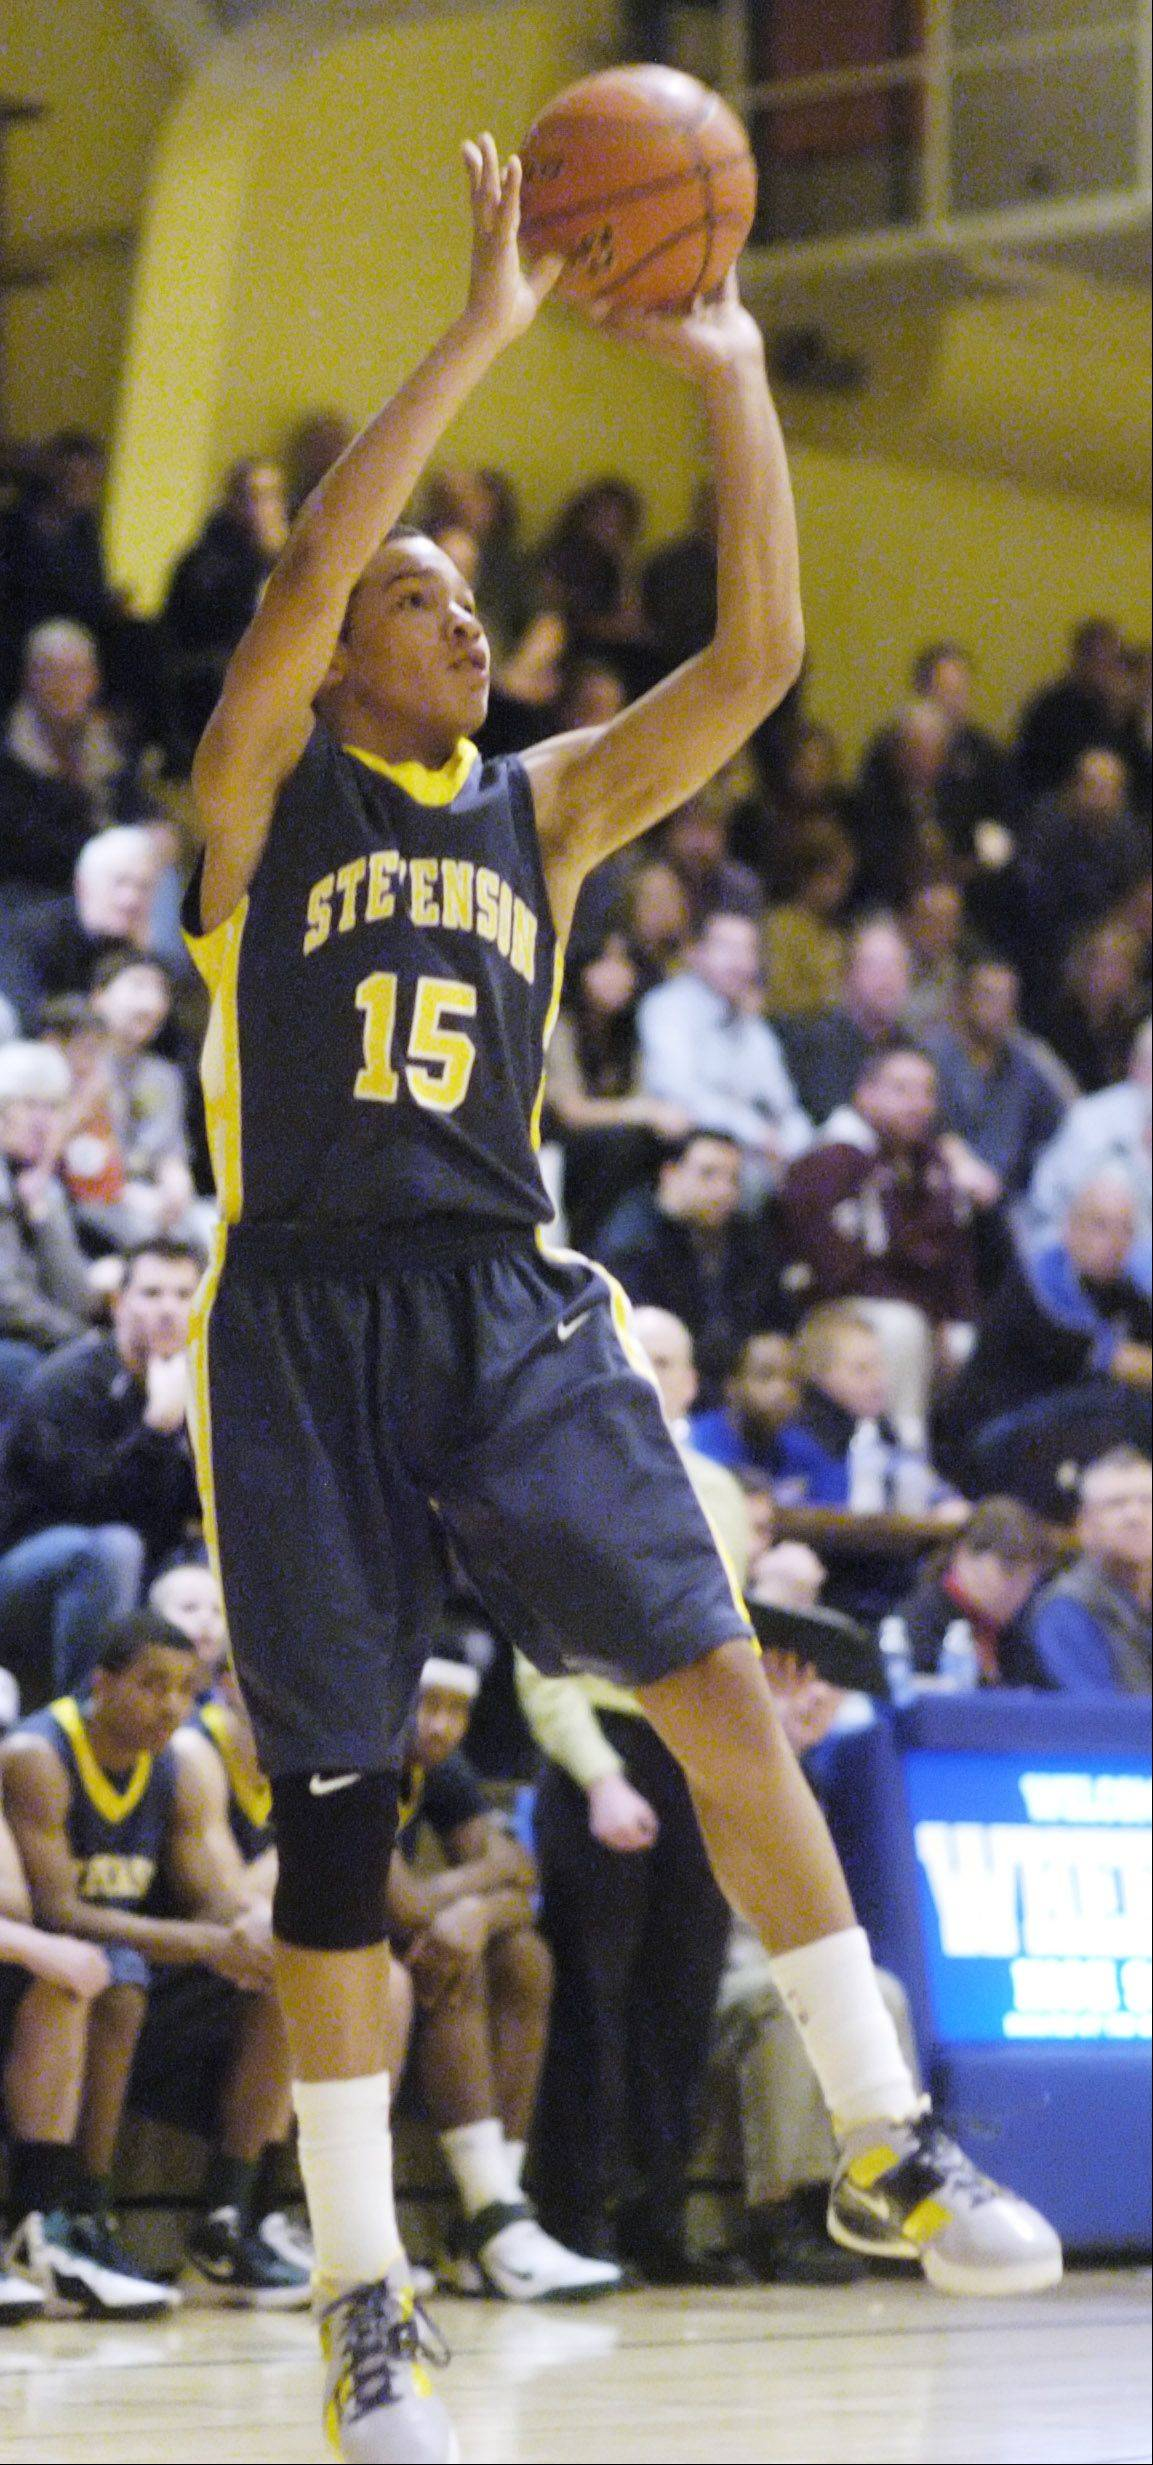 Stevenson's Jalen Brunson earned second-team all-tournament honors for his efforts at Proviso West over the holidays.